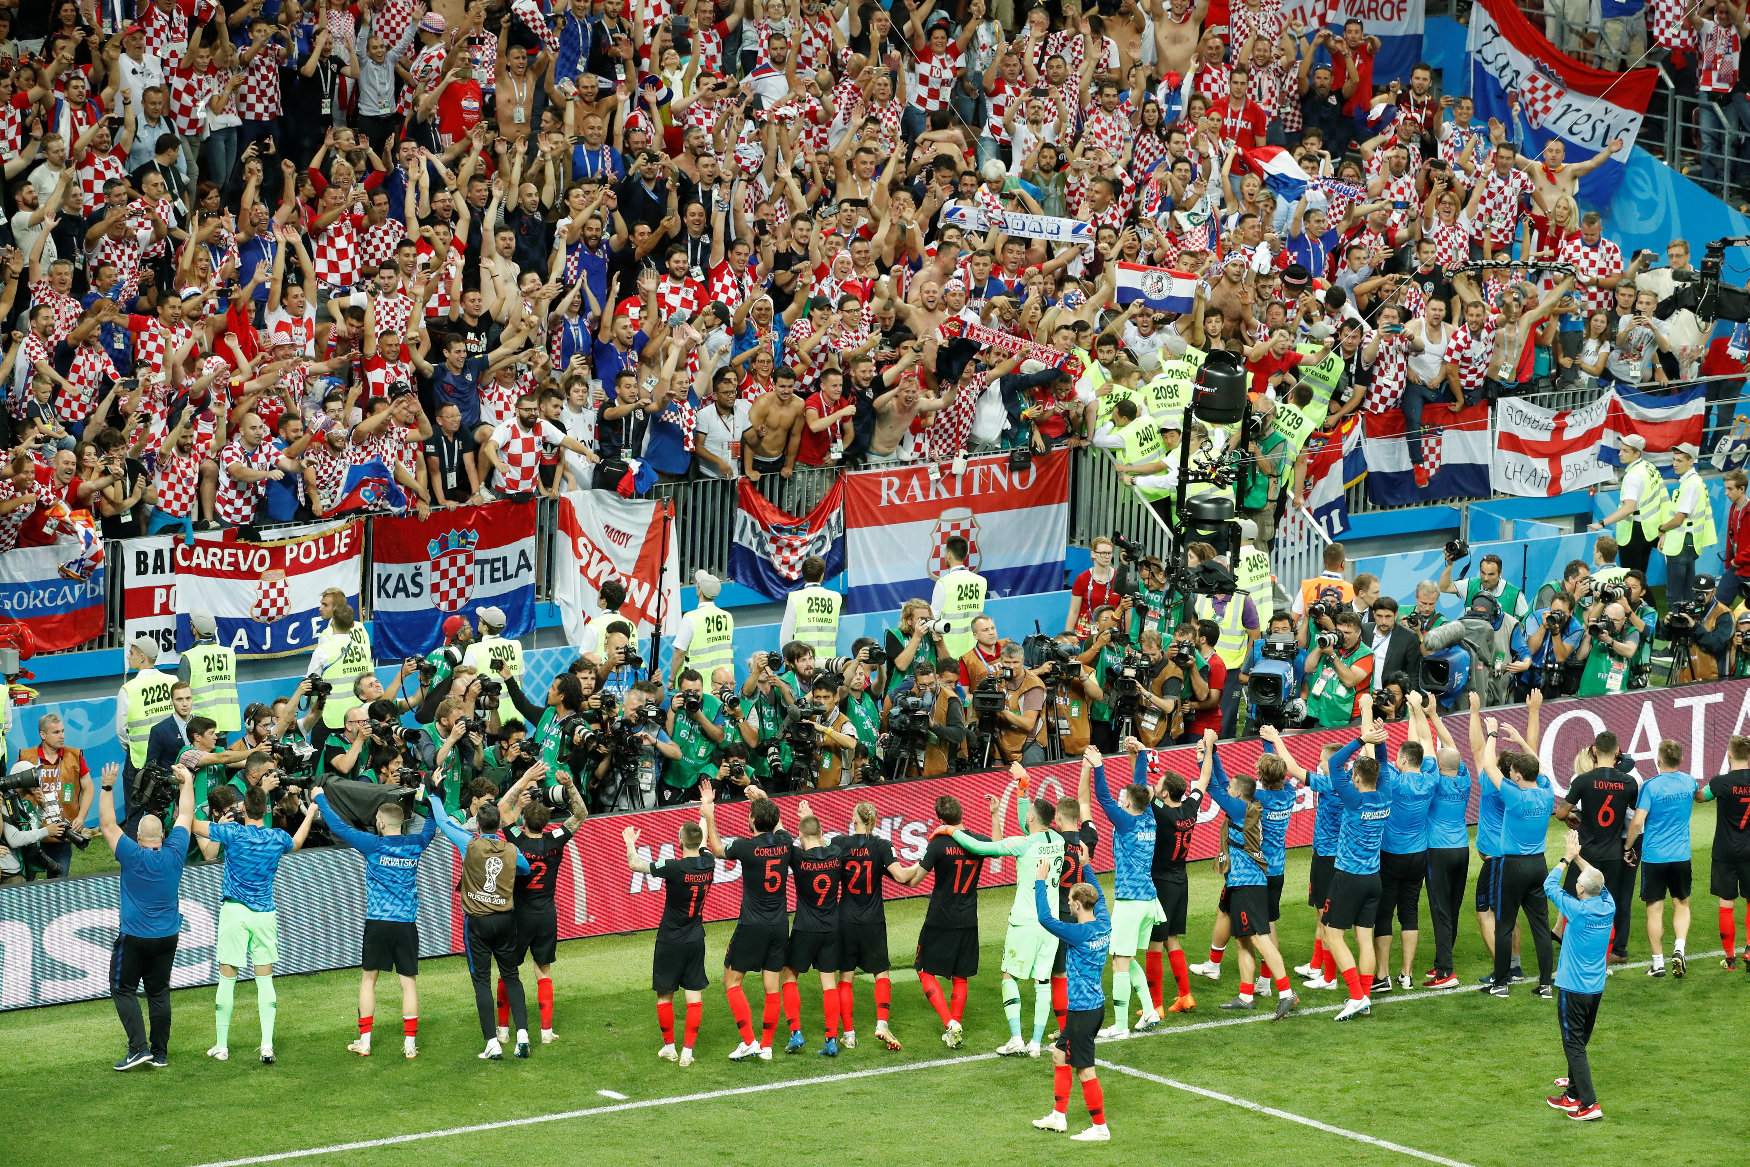 2018-07-11T205422Z_71432156_RC1D886067B0_RTRMADP_3_SOCCER-WORLDCUP-CRO-ENG